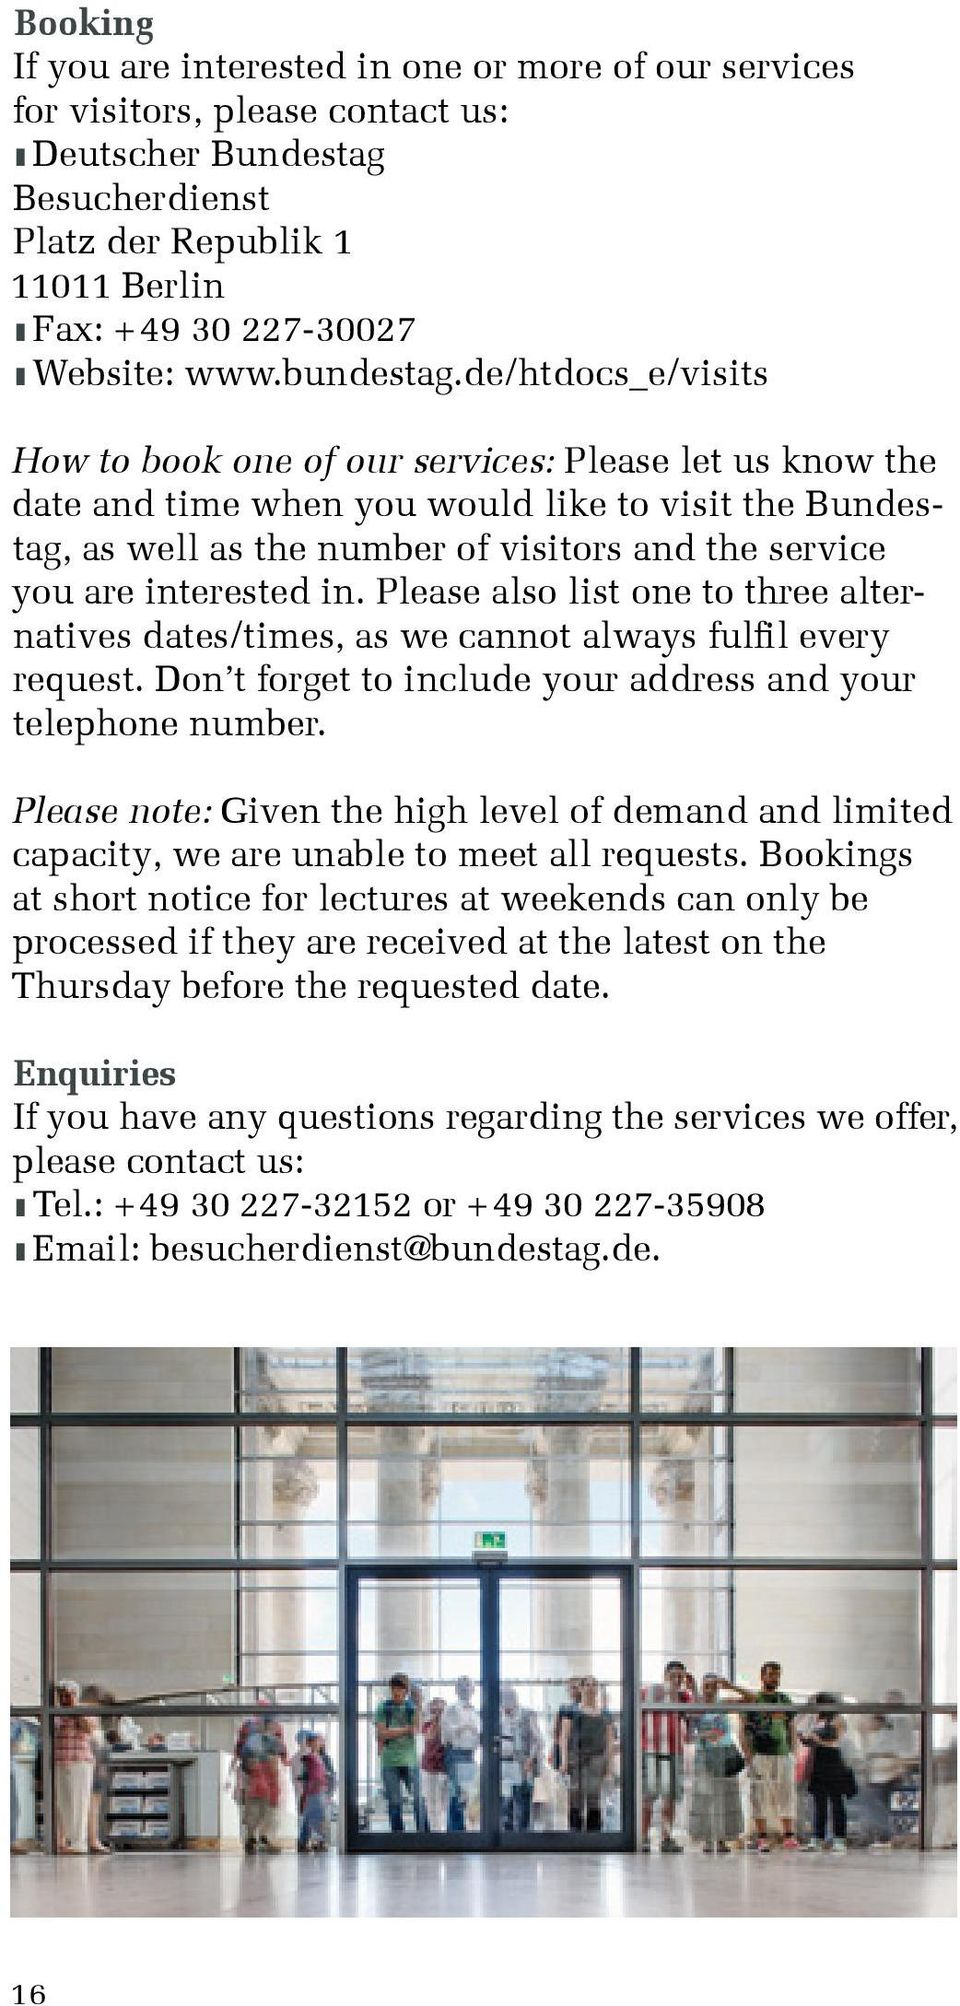 de/htdocs_e/visits How to book one of our services: Please let us know the date and time when you would like to visit the Bundestag, as well as the number of visitors and the service you are